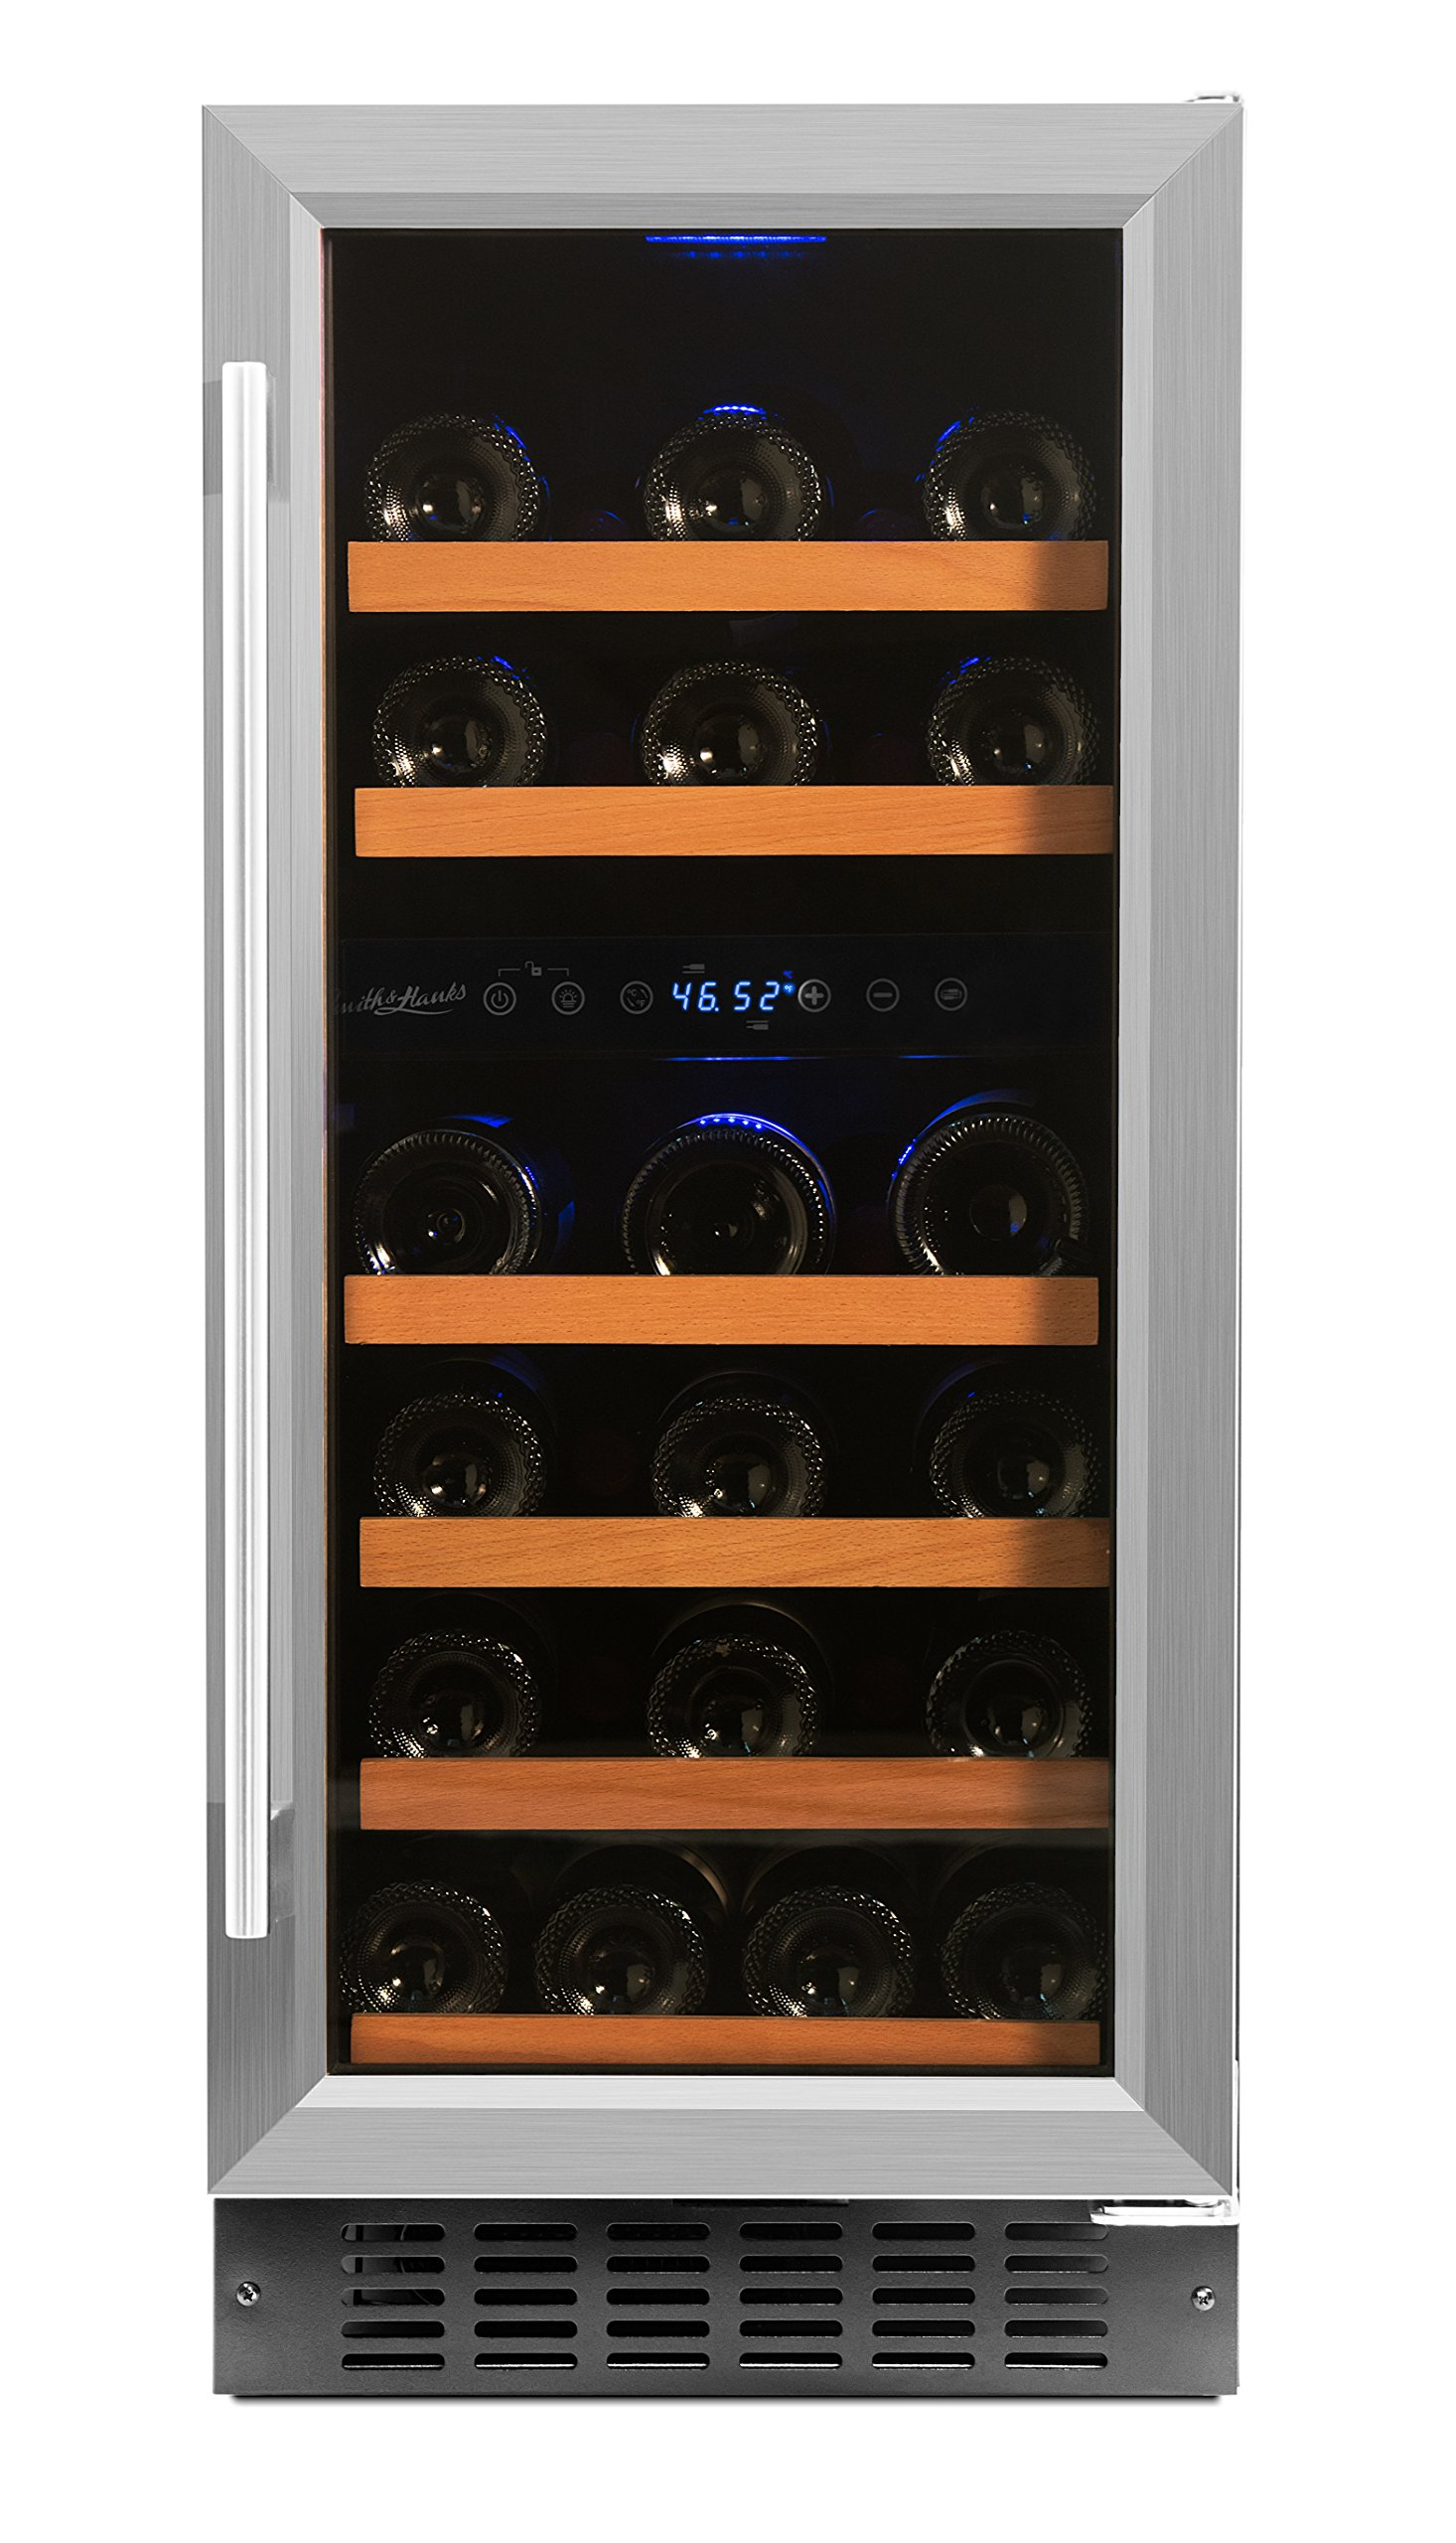 Smith & Hanks 32 Bottle Under Counter Wine Refrigerator, Dual Temperature Zones, 15 Inches Wide, Built-In or Free Standing by Smith & Hanks